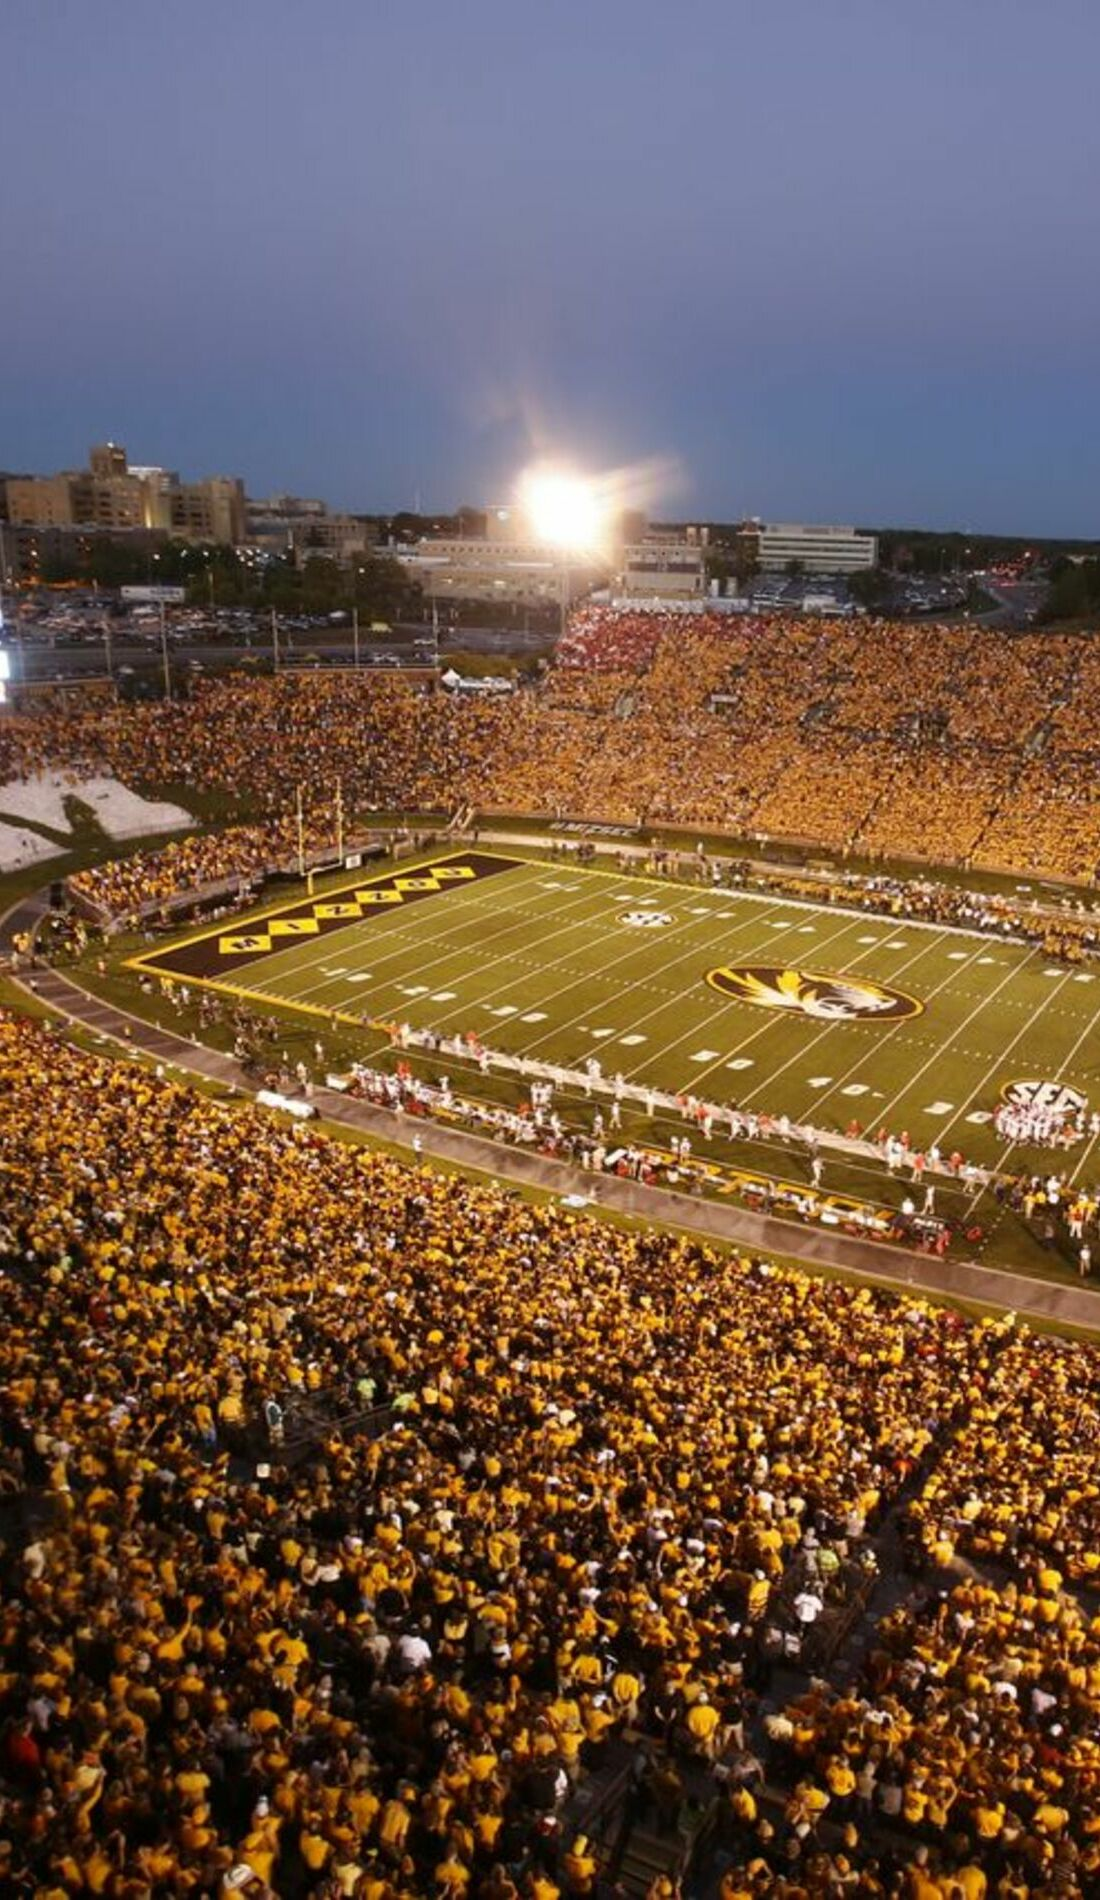 A Missouri Tigers Football live event